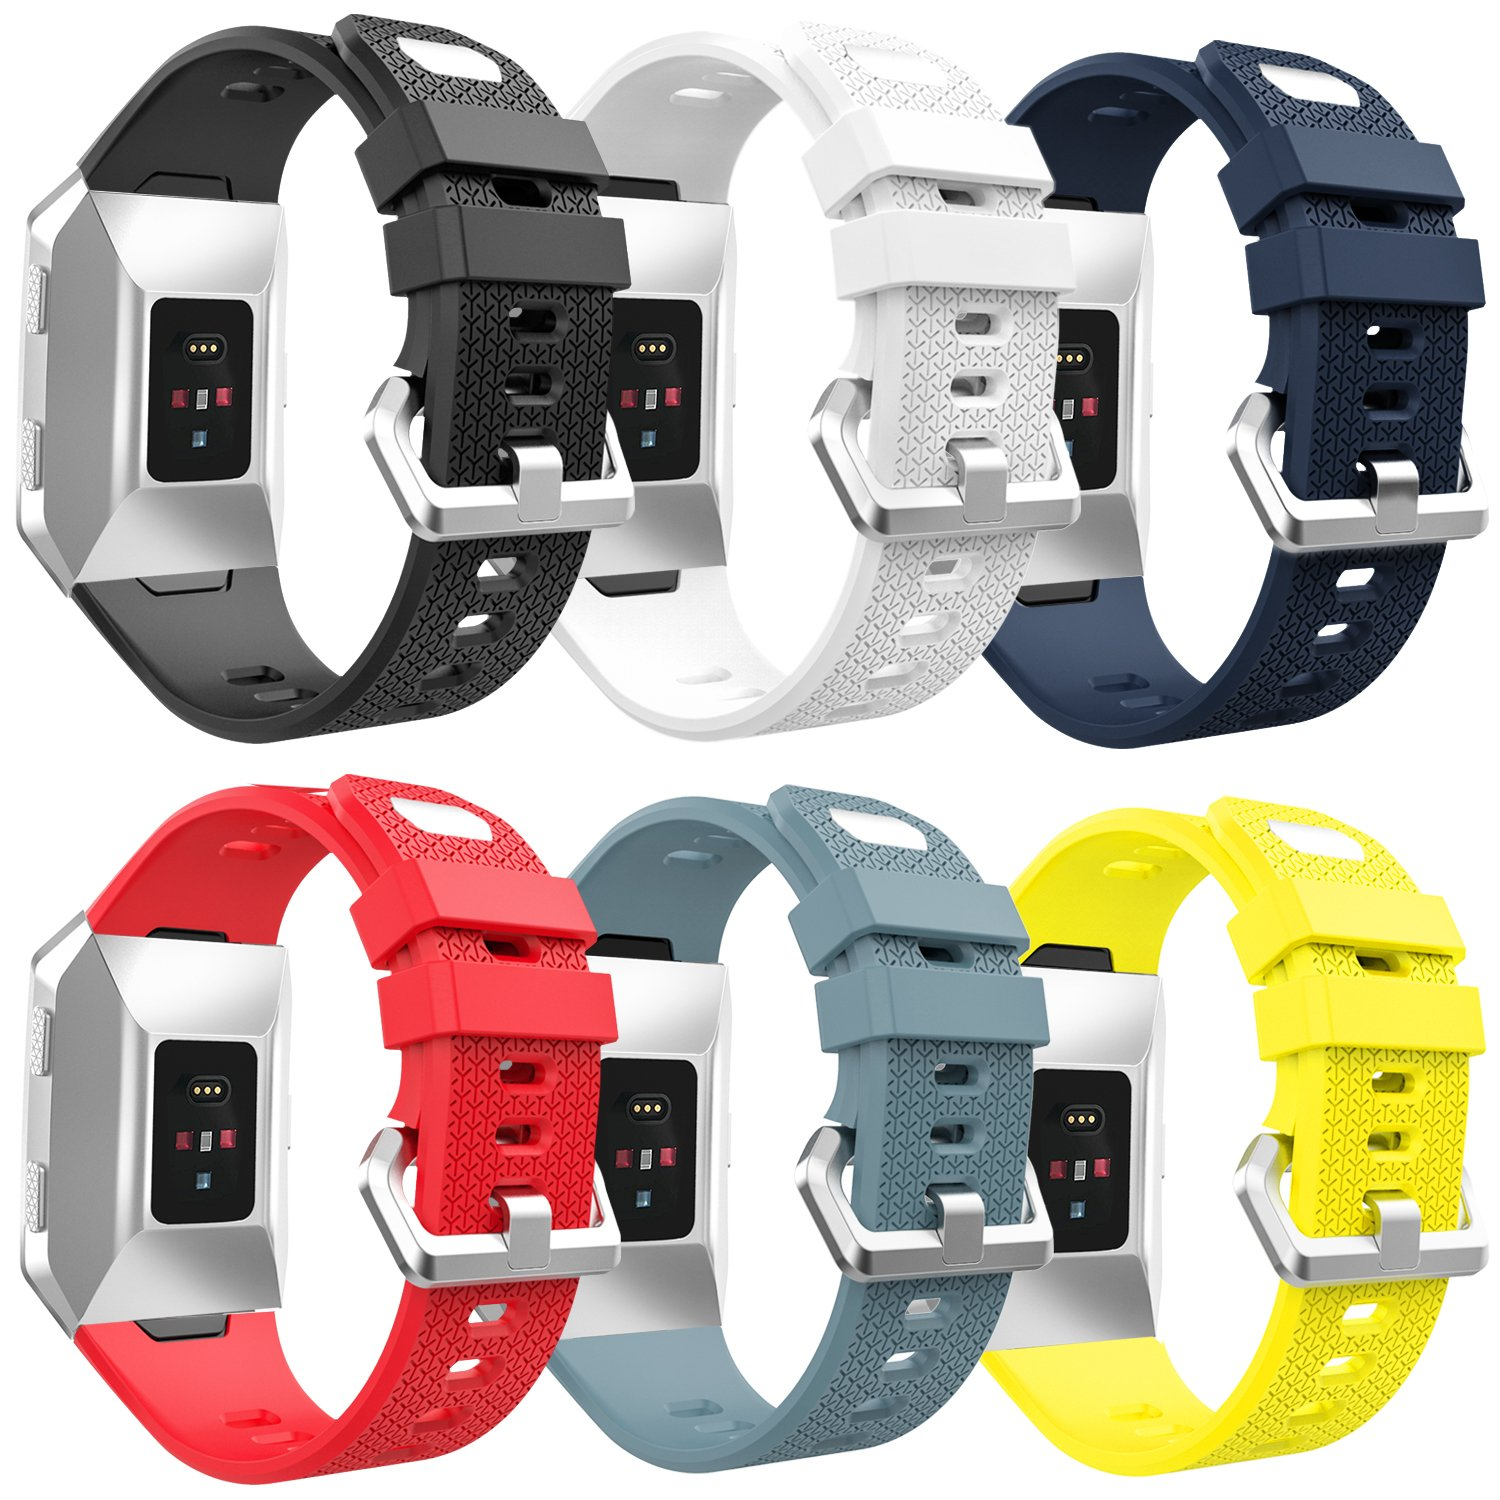 MoKo Fitbit Ionic Watch Band, [6 PACK] Soft Silicone Adjustable Replacement Sport Strap for Fitbit Ionic Smart Watch, Large Size 5.11''-8.66'' (130mm-220mm), 6PCS (Multi-Colors)